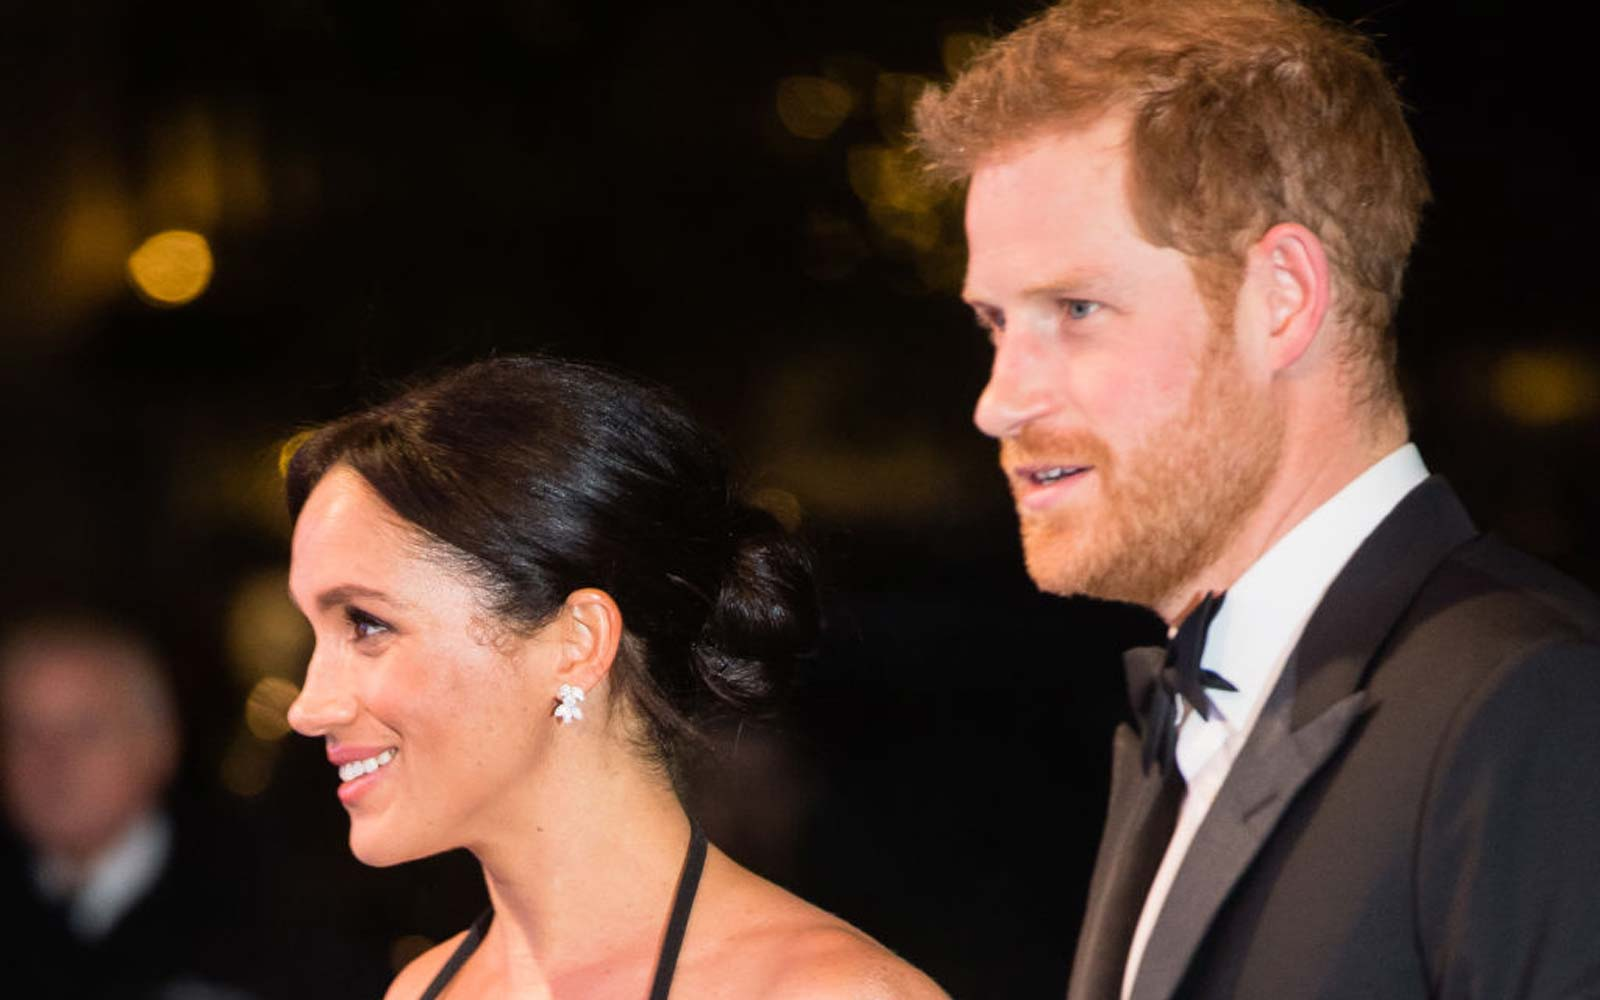 Meghan Markle and Prince Harry Just Quietly Hung Out With Adele